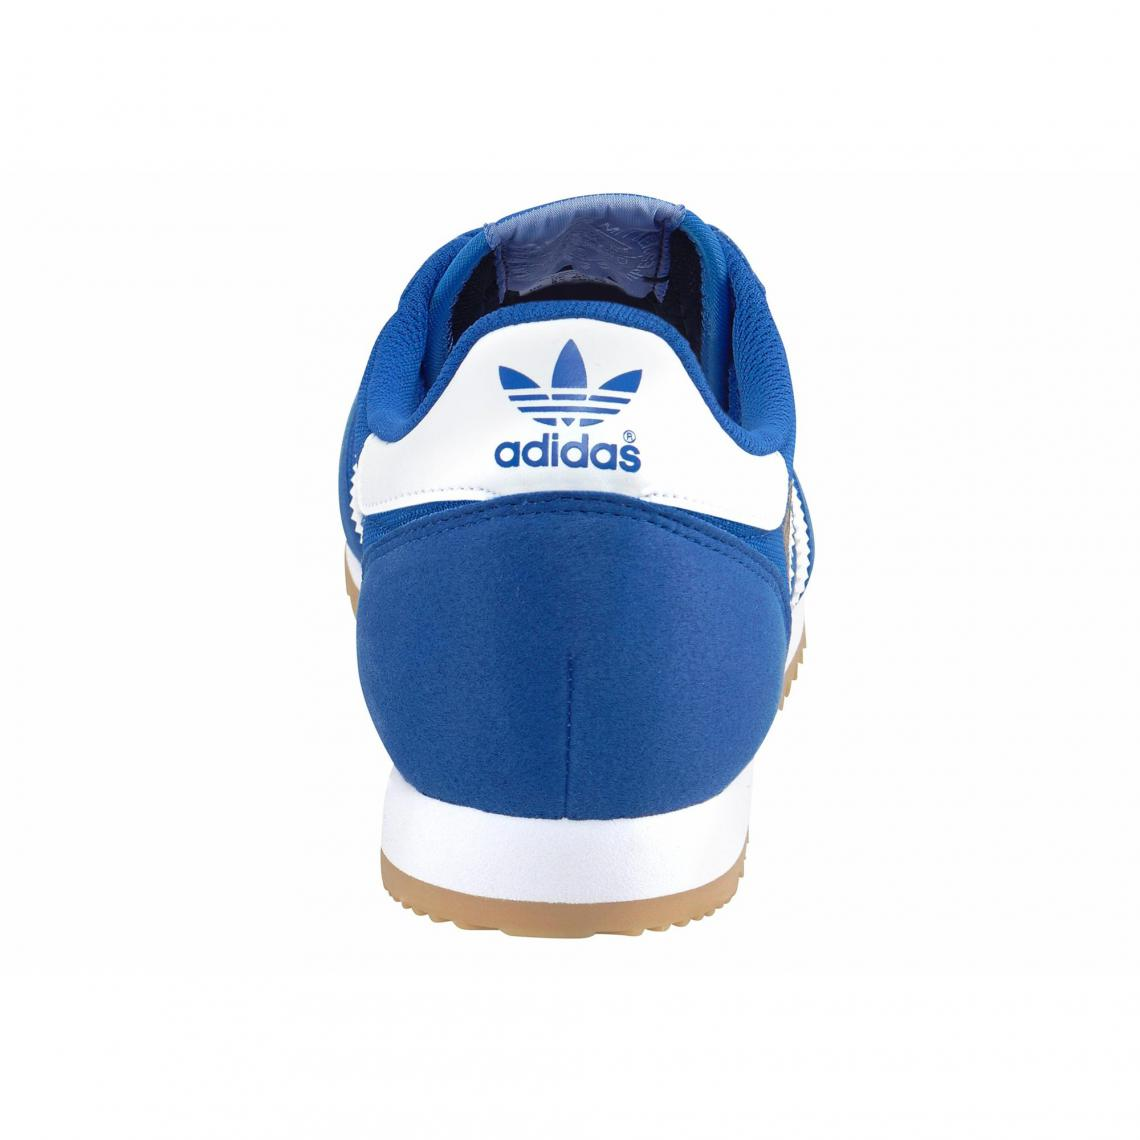 De Og Chaussures Originals Dragon Homme Adidas Running axwgI0E8